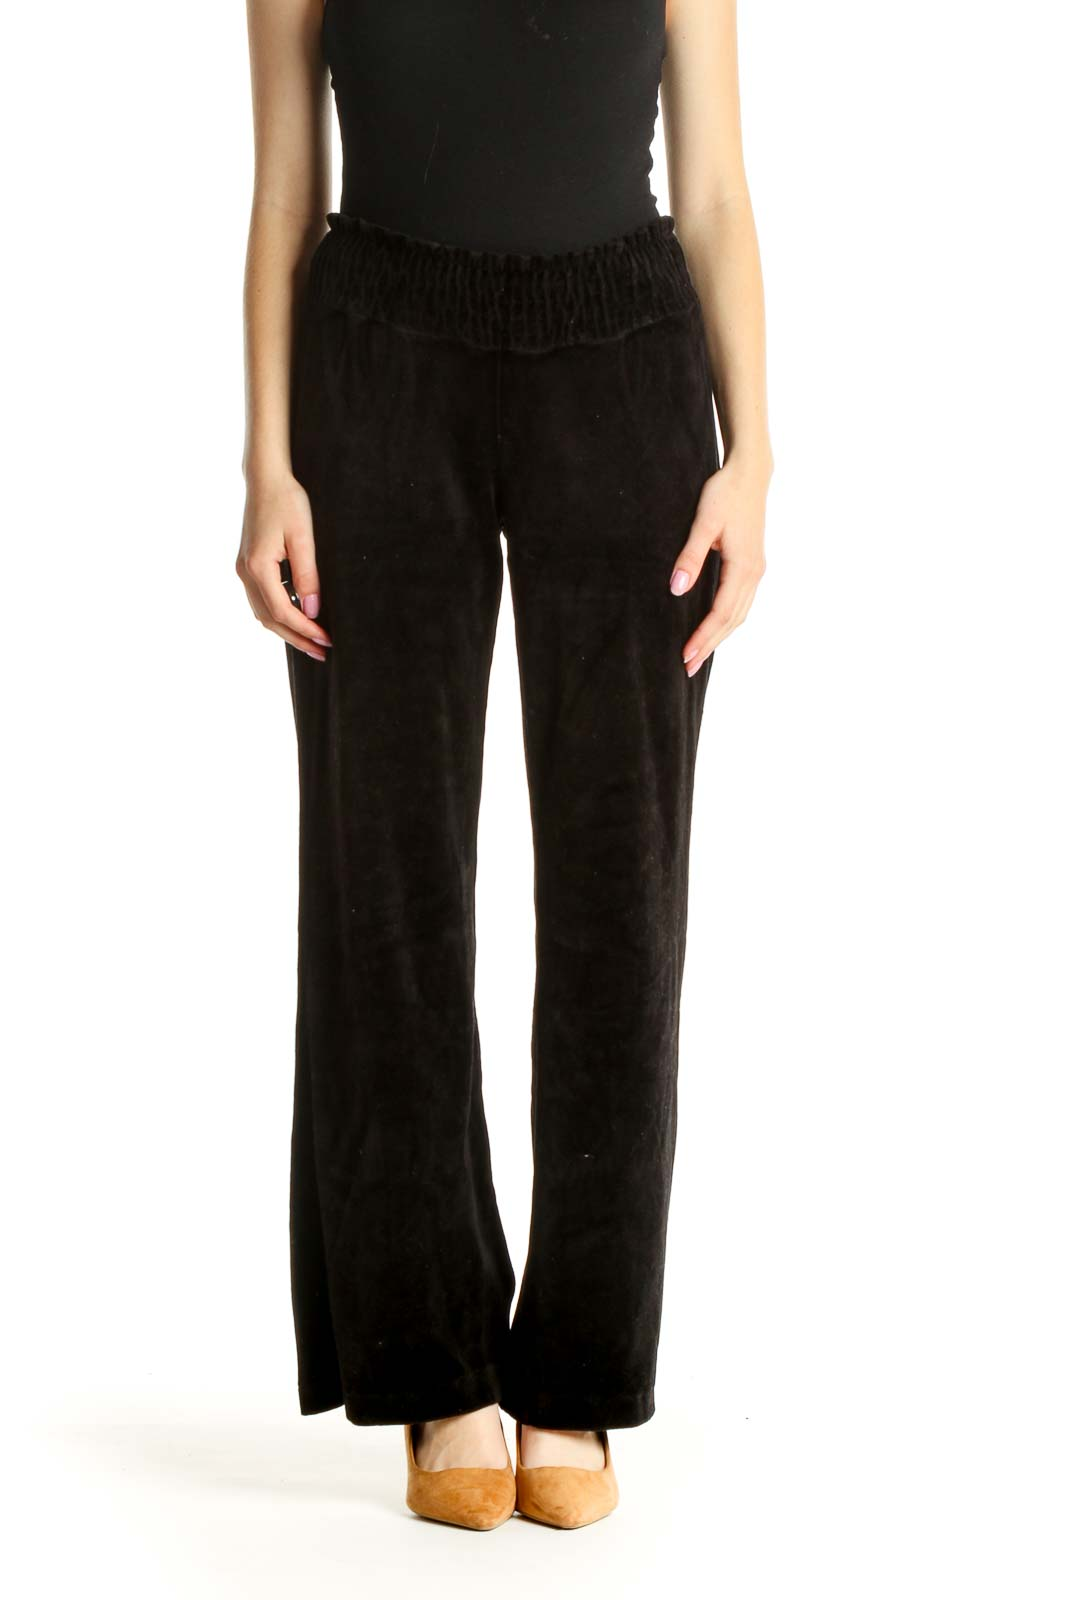 Black Solid All Day Wear Velour Pants Front